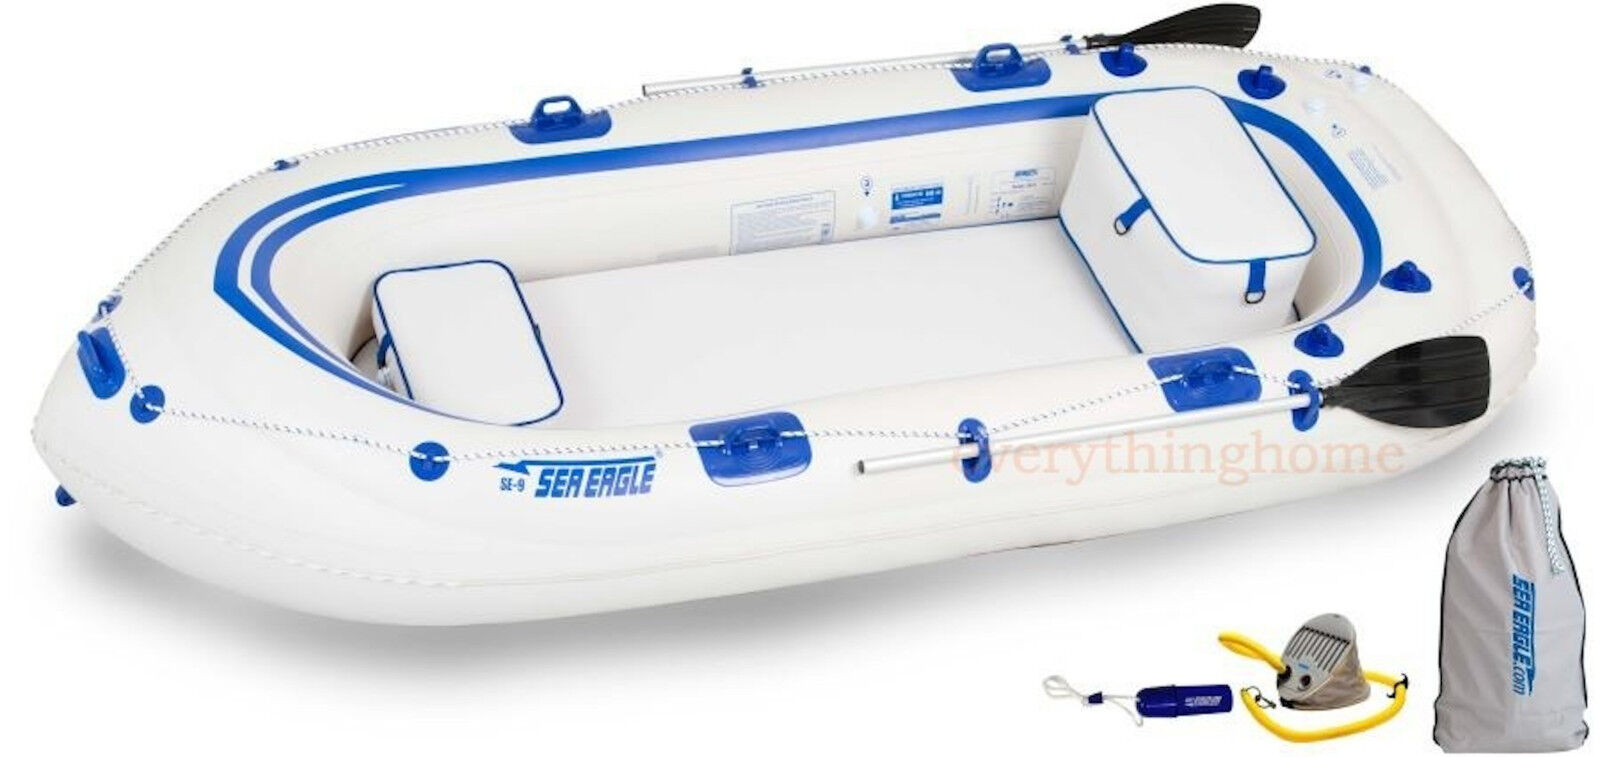 Sea Eagle SE9 Startup Package Inflatable Boat 2 Oars, 2 Seat